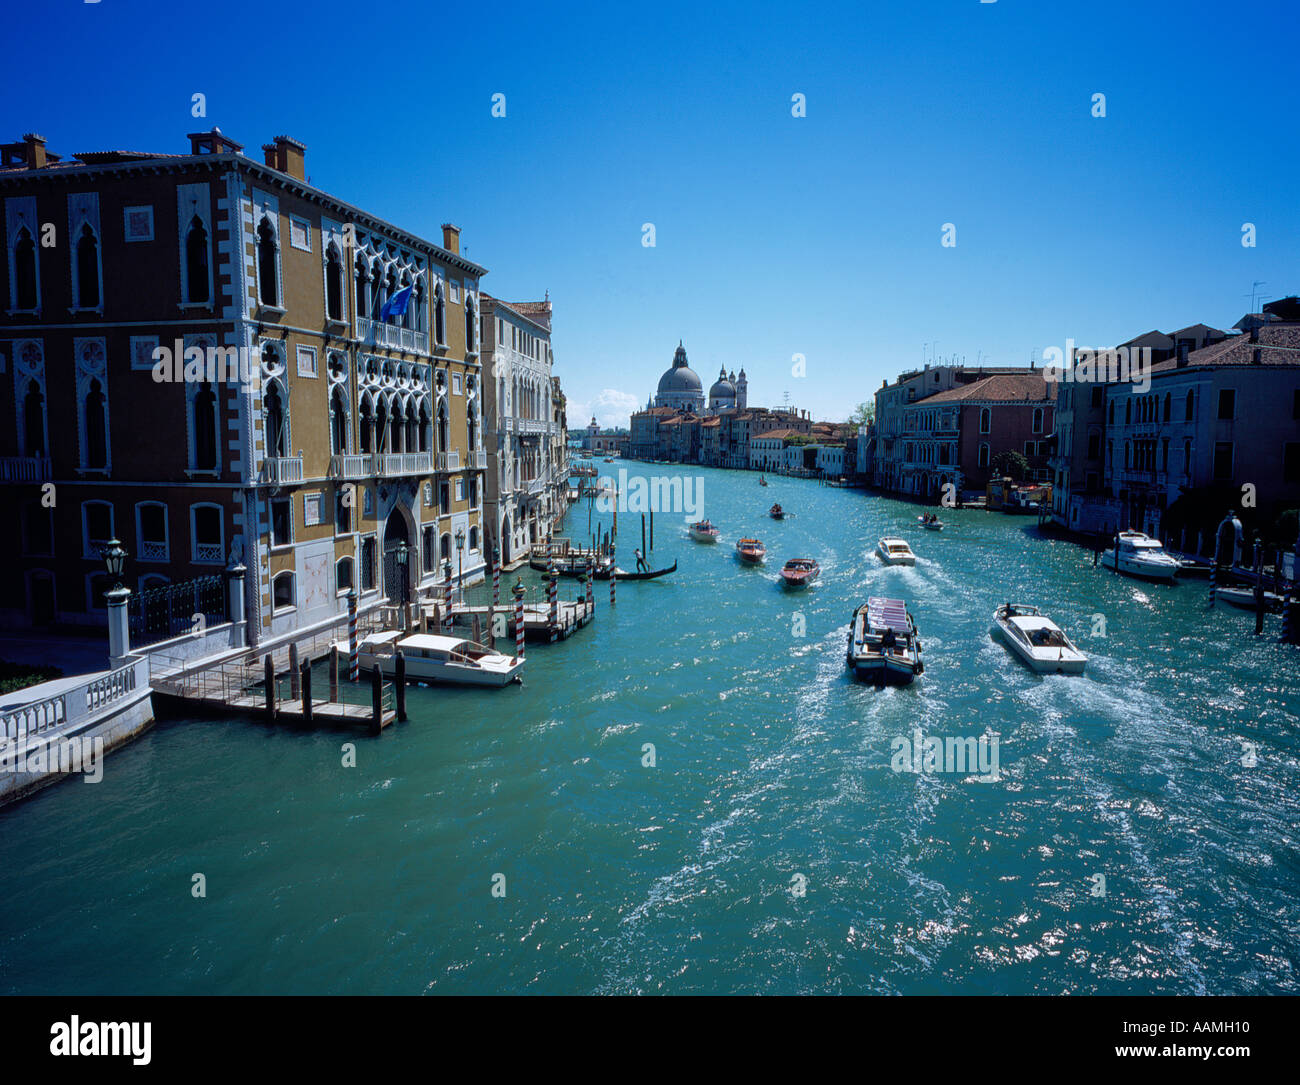 canal grande Venice Italy Europe. Photo by Willy Matheisl Stock Photo